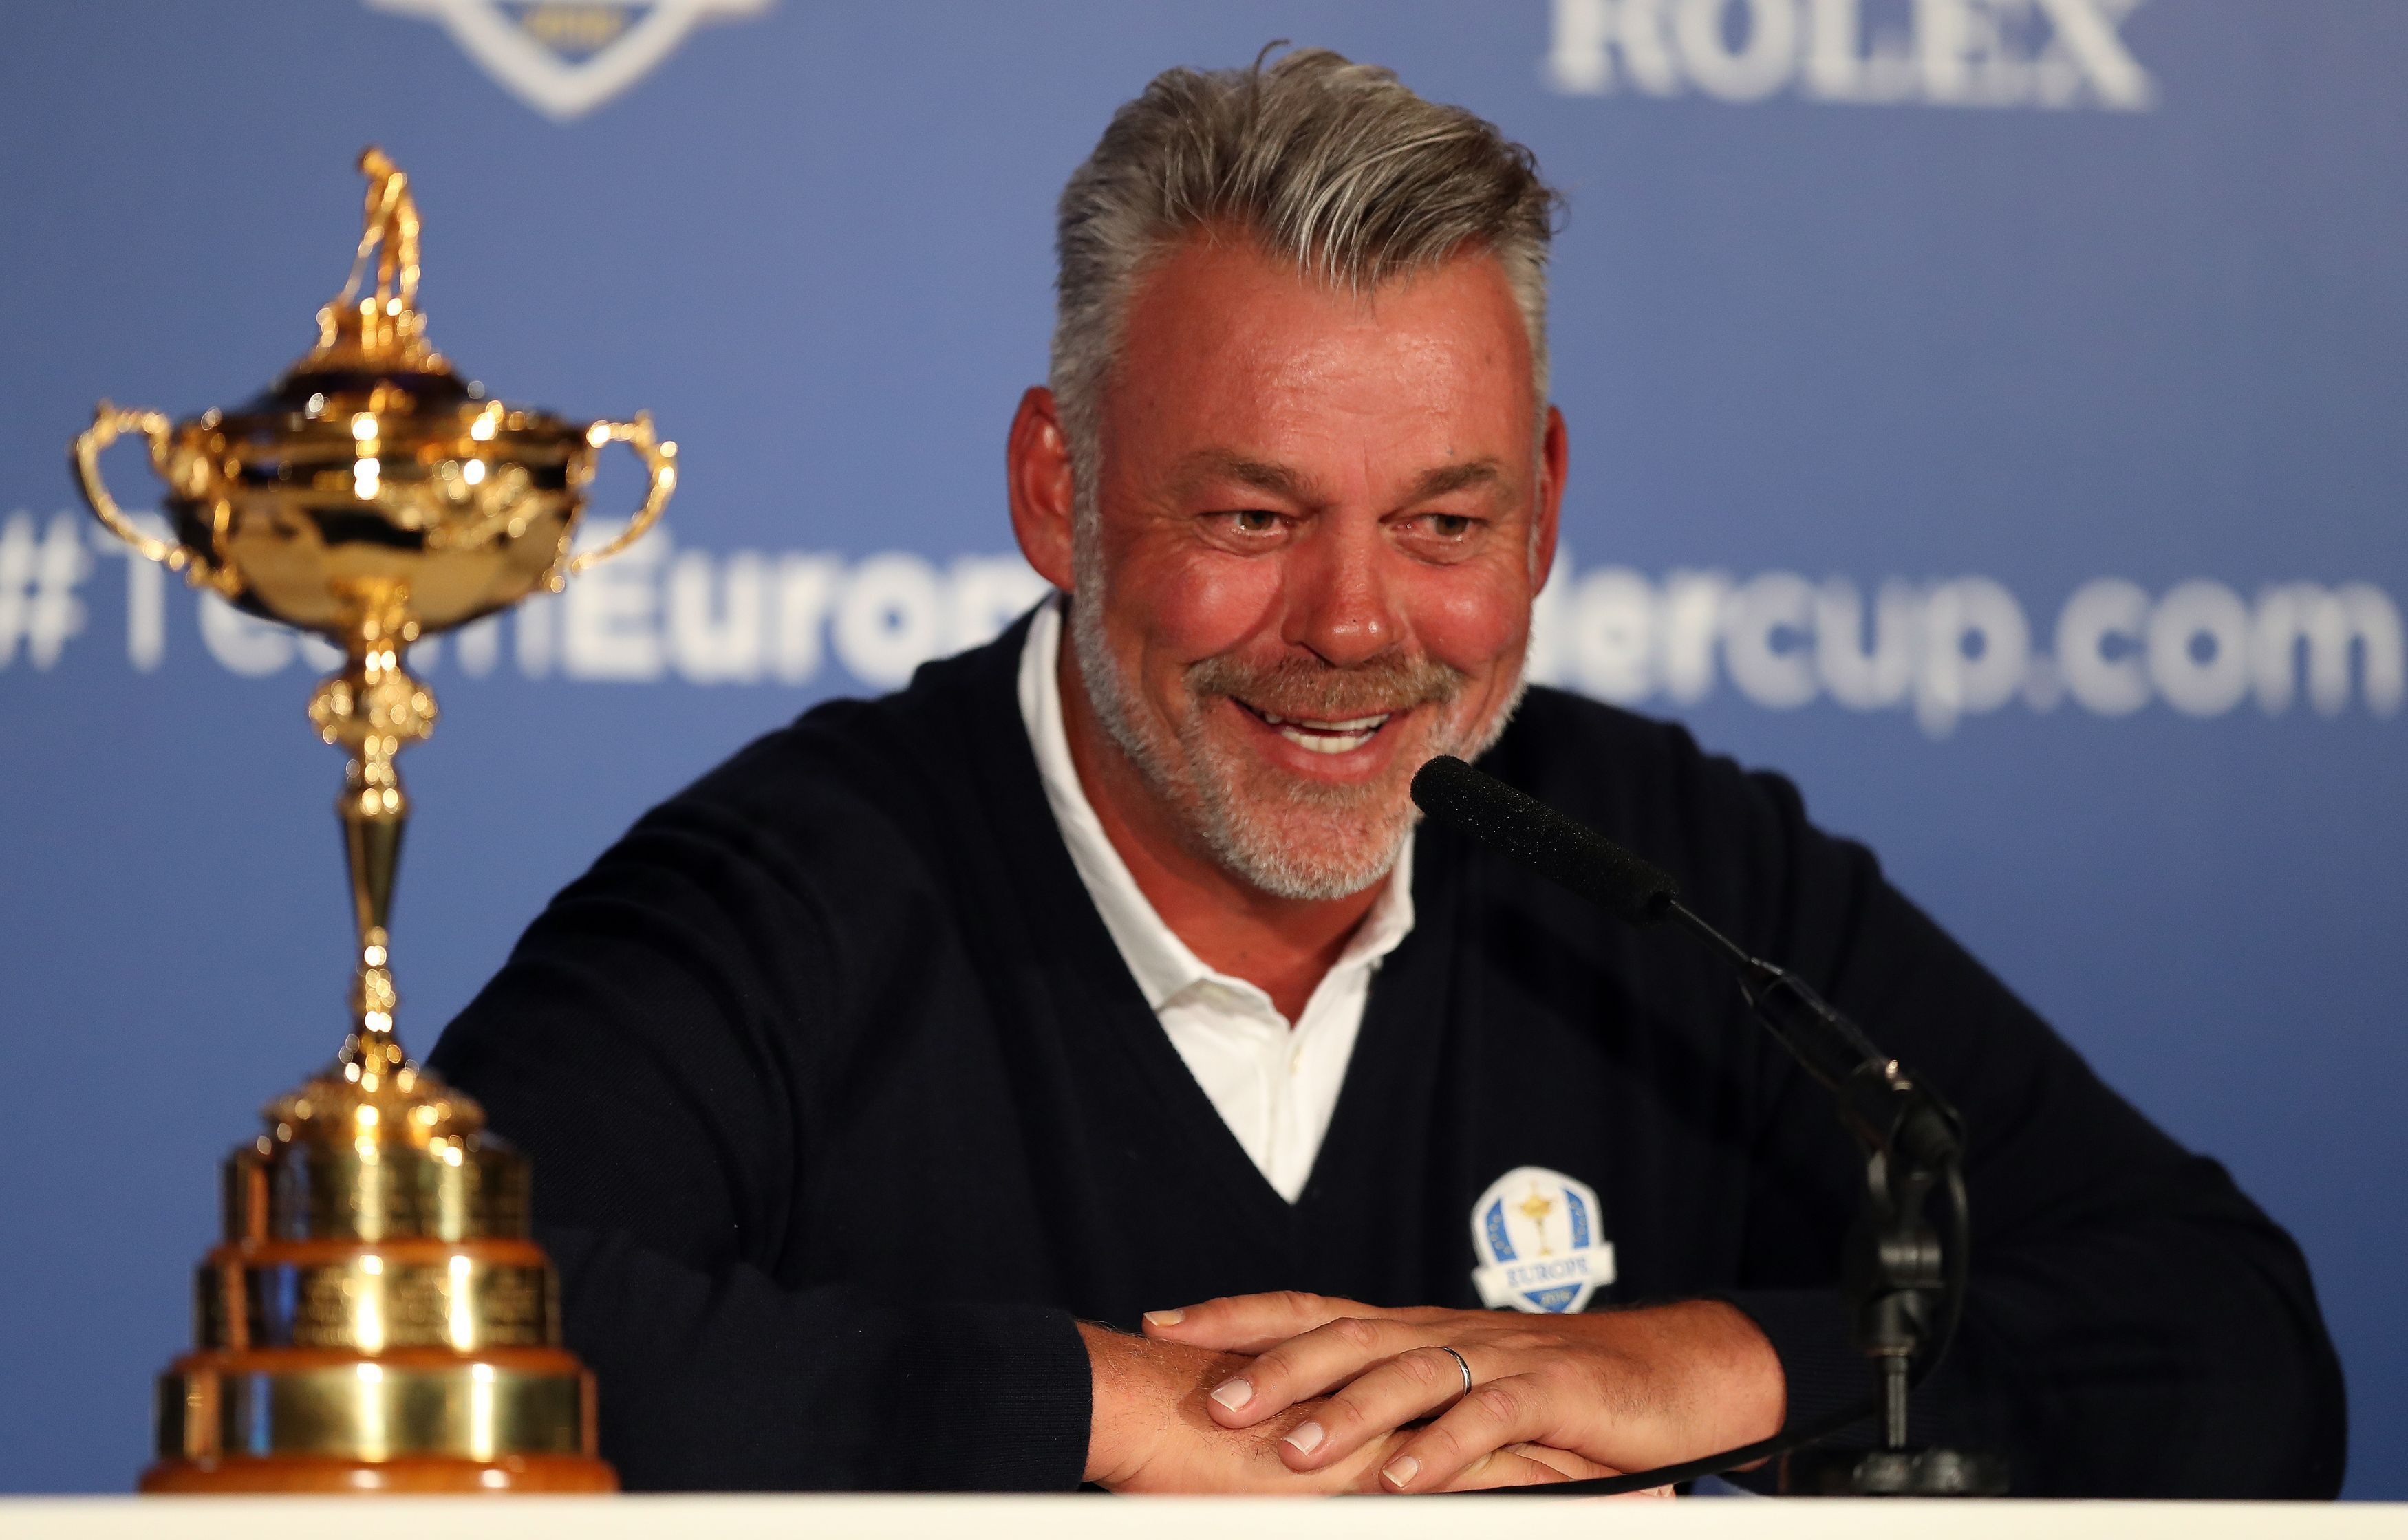 European Ryder Cup captain Darren Clarke smiles during a press conference at Wentworth Golf Club, Virginia Waters, England Tuesday Aug. 30, 2016. Lee Westwood, Martin Kaymer and Thomas Pieters will fill out the European team as Darren Clarke's captain's p